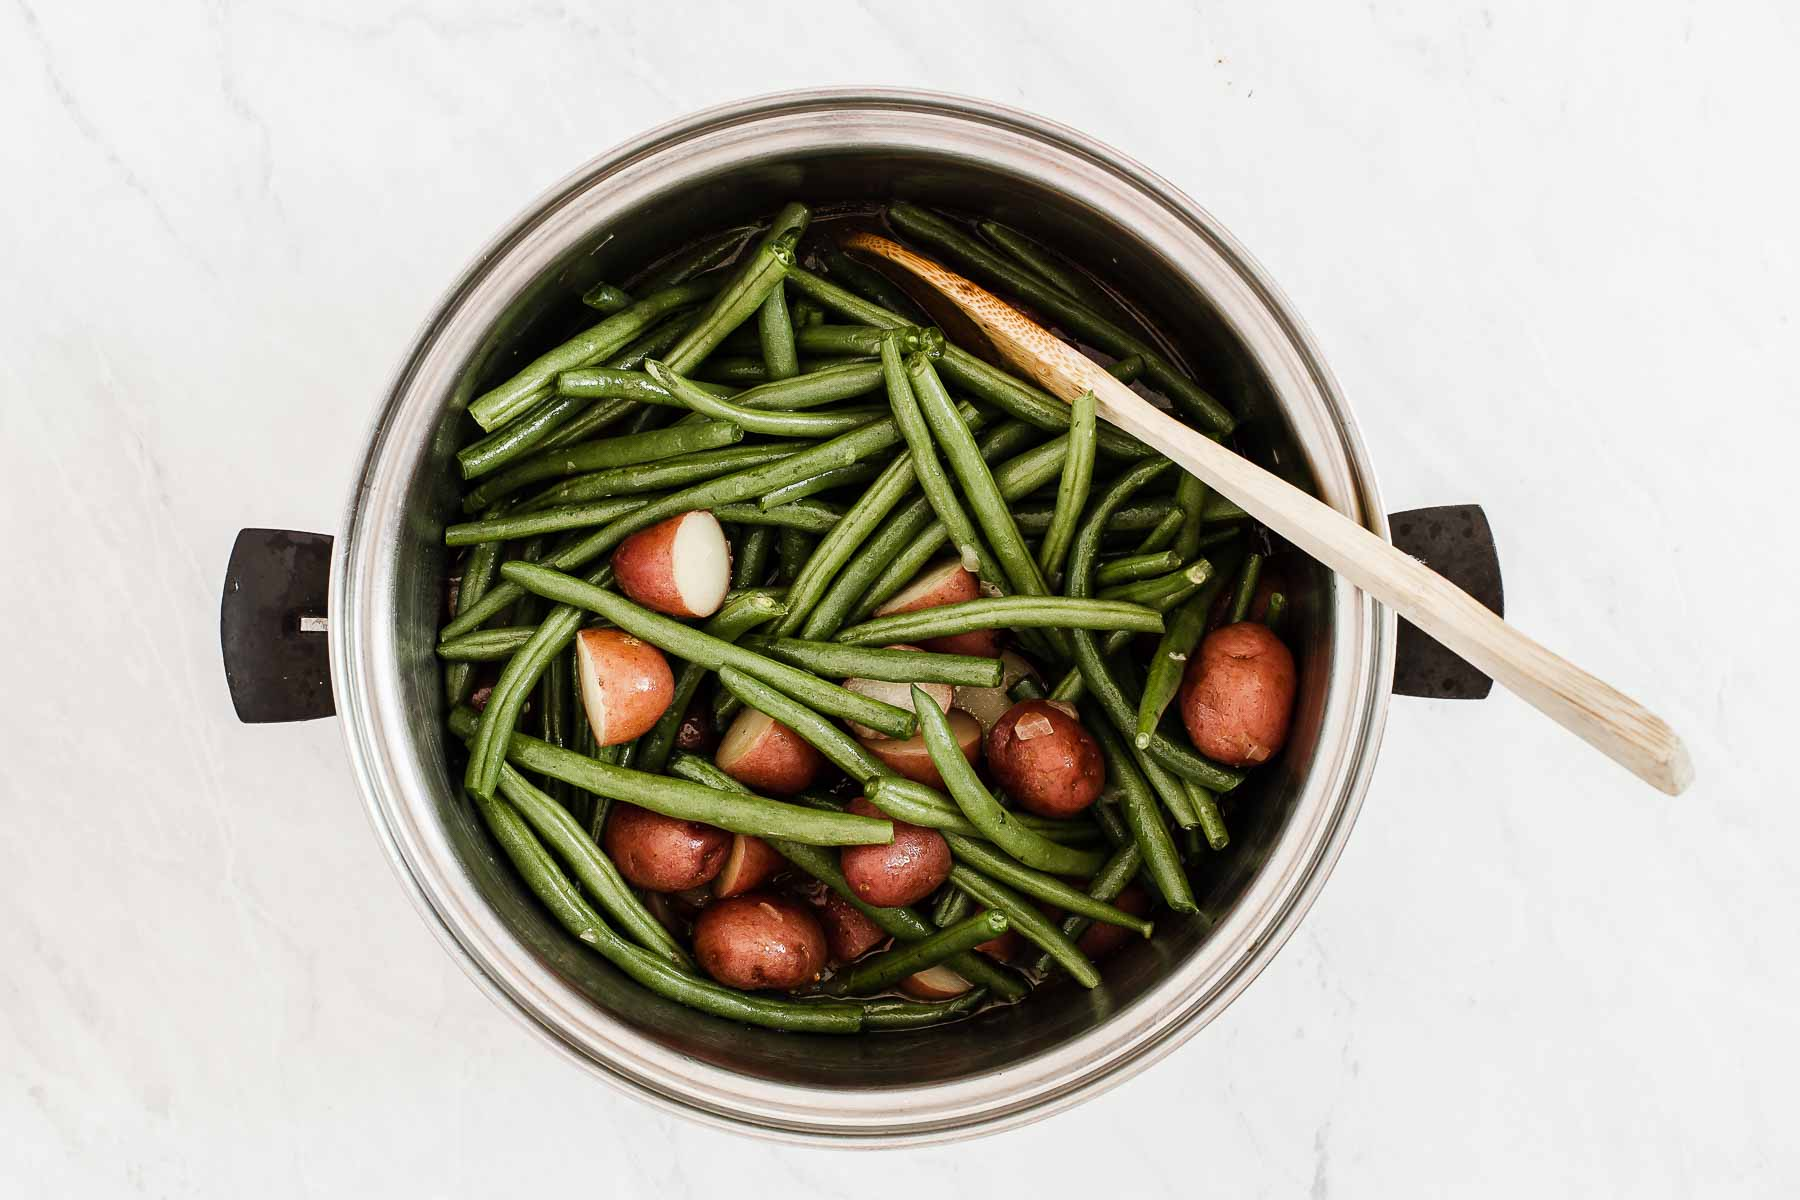 Pot of green beans and potatoes cooking together with wooden spoon.